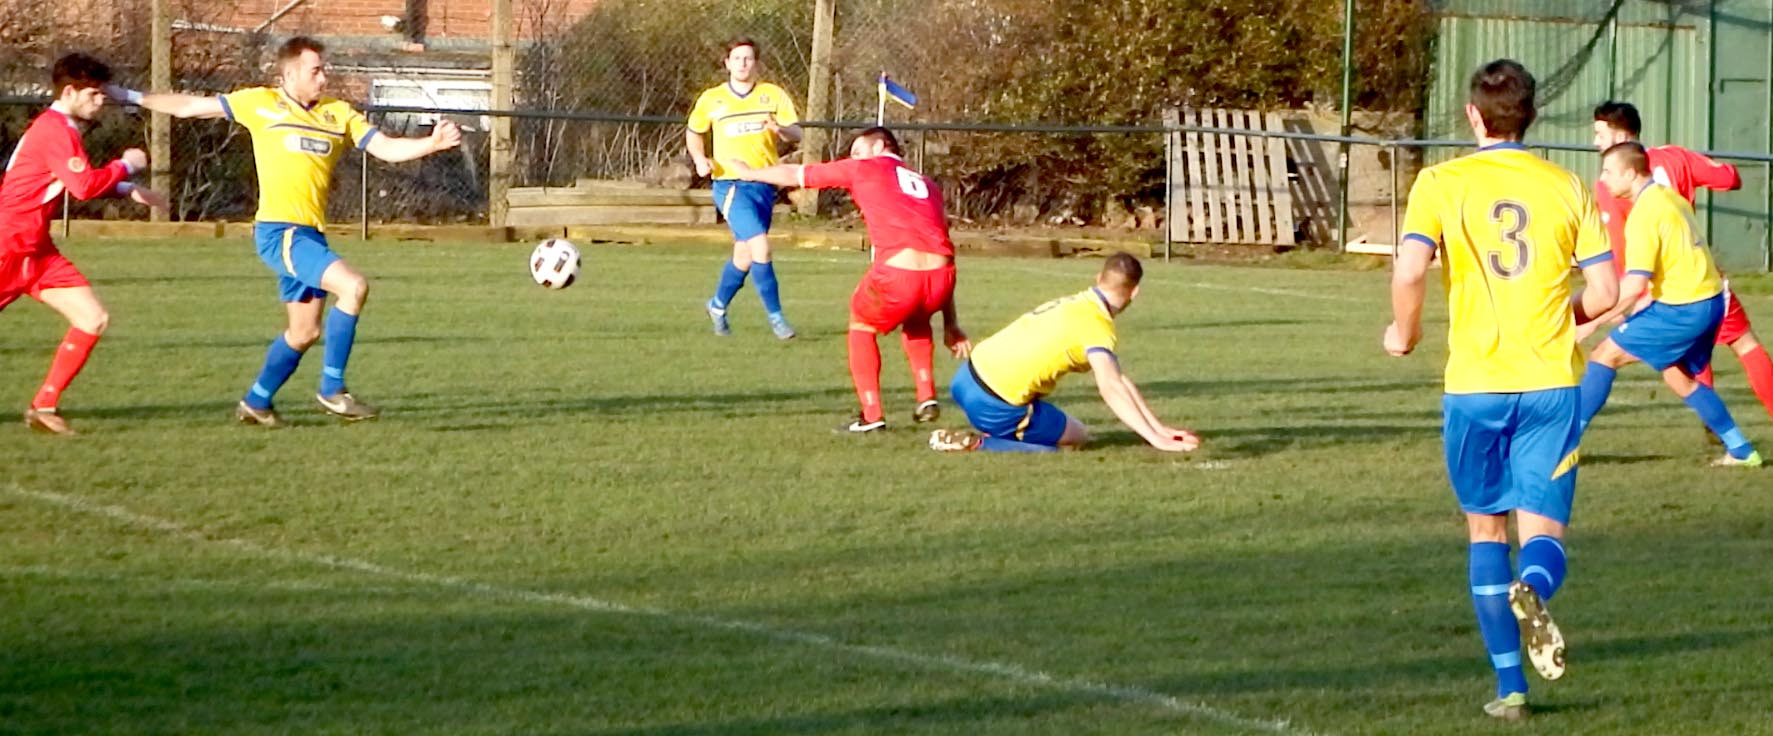 Aycliffe Win Cup Match but Lose League Game to Markse